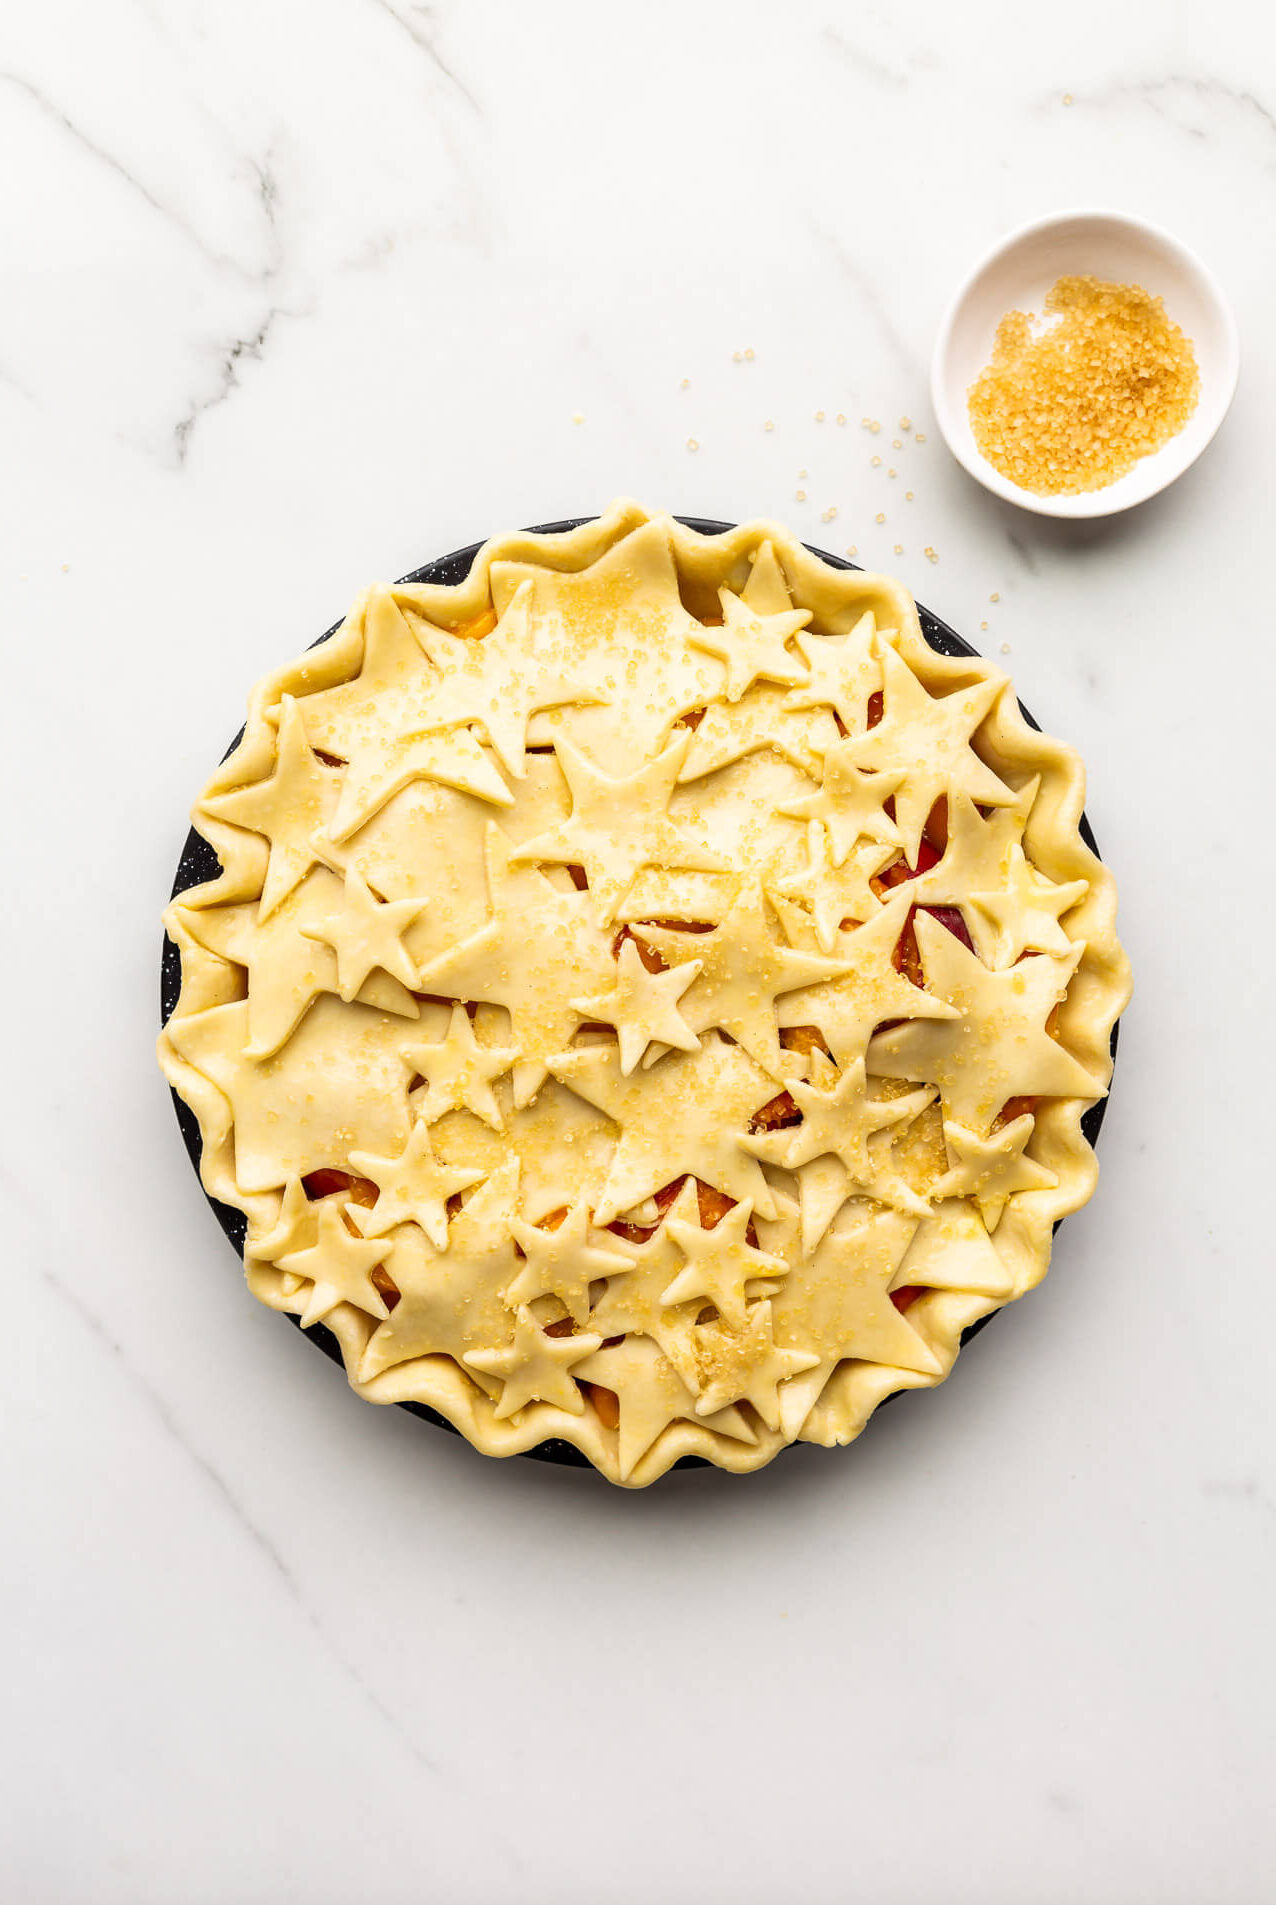 Unbaked pie decorated with star cutouts and sprinkled with turbinado sugar before baking